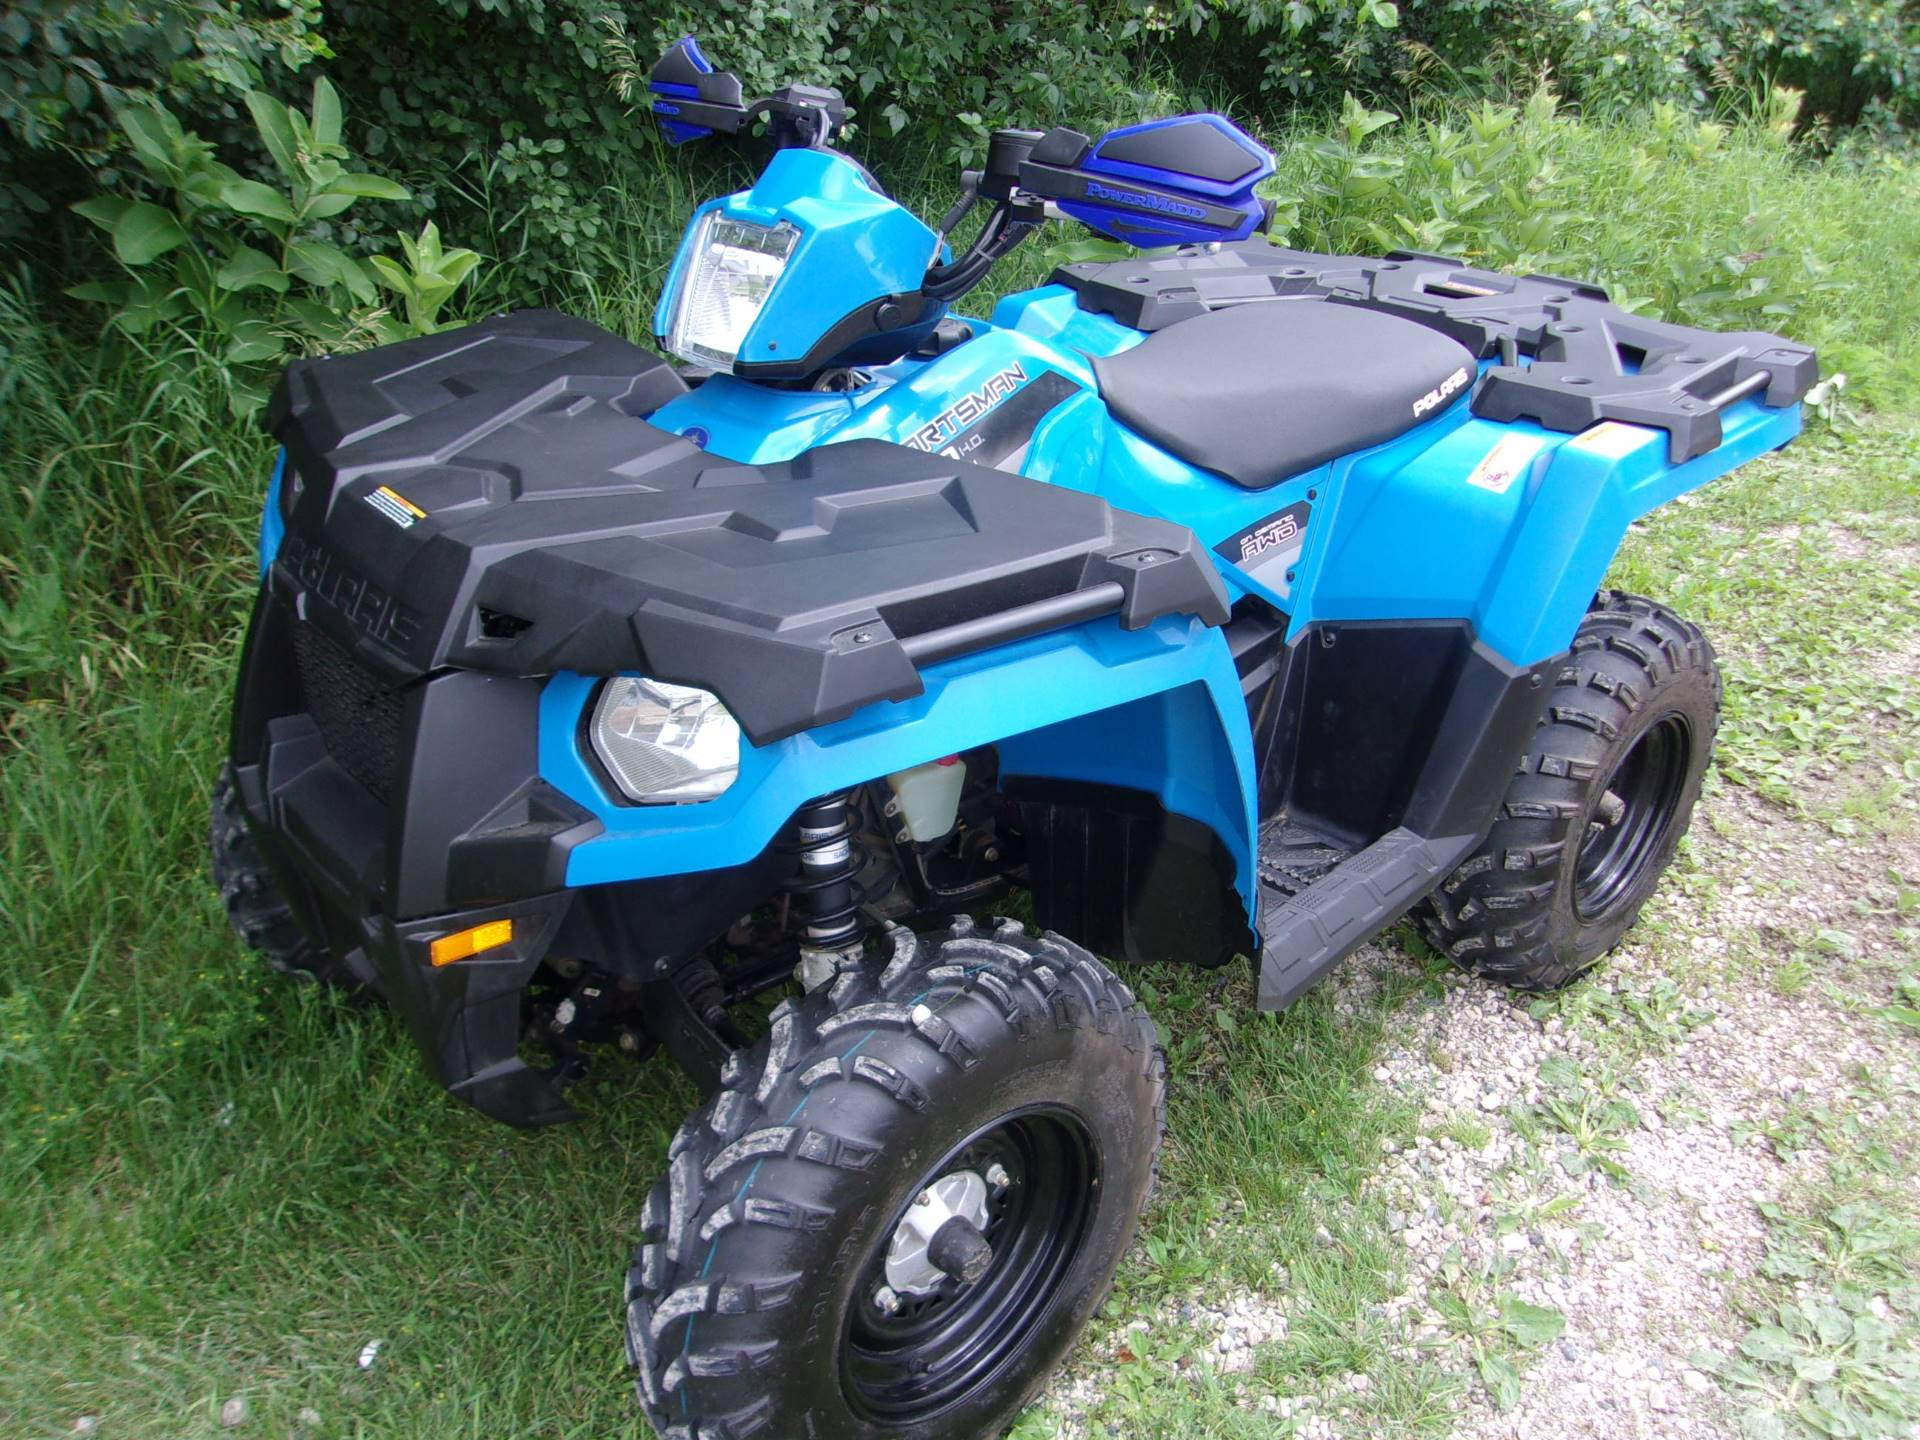 2016 Polaris Sportsman 450 H.O. in Mukwonago, Wisconsin - Photo 6